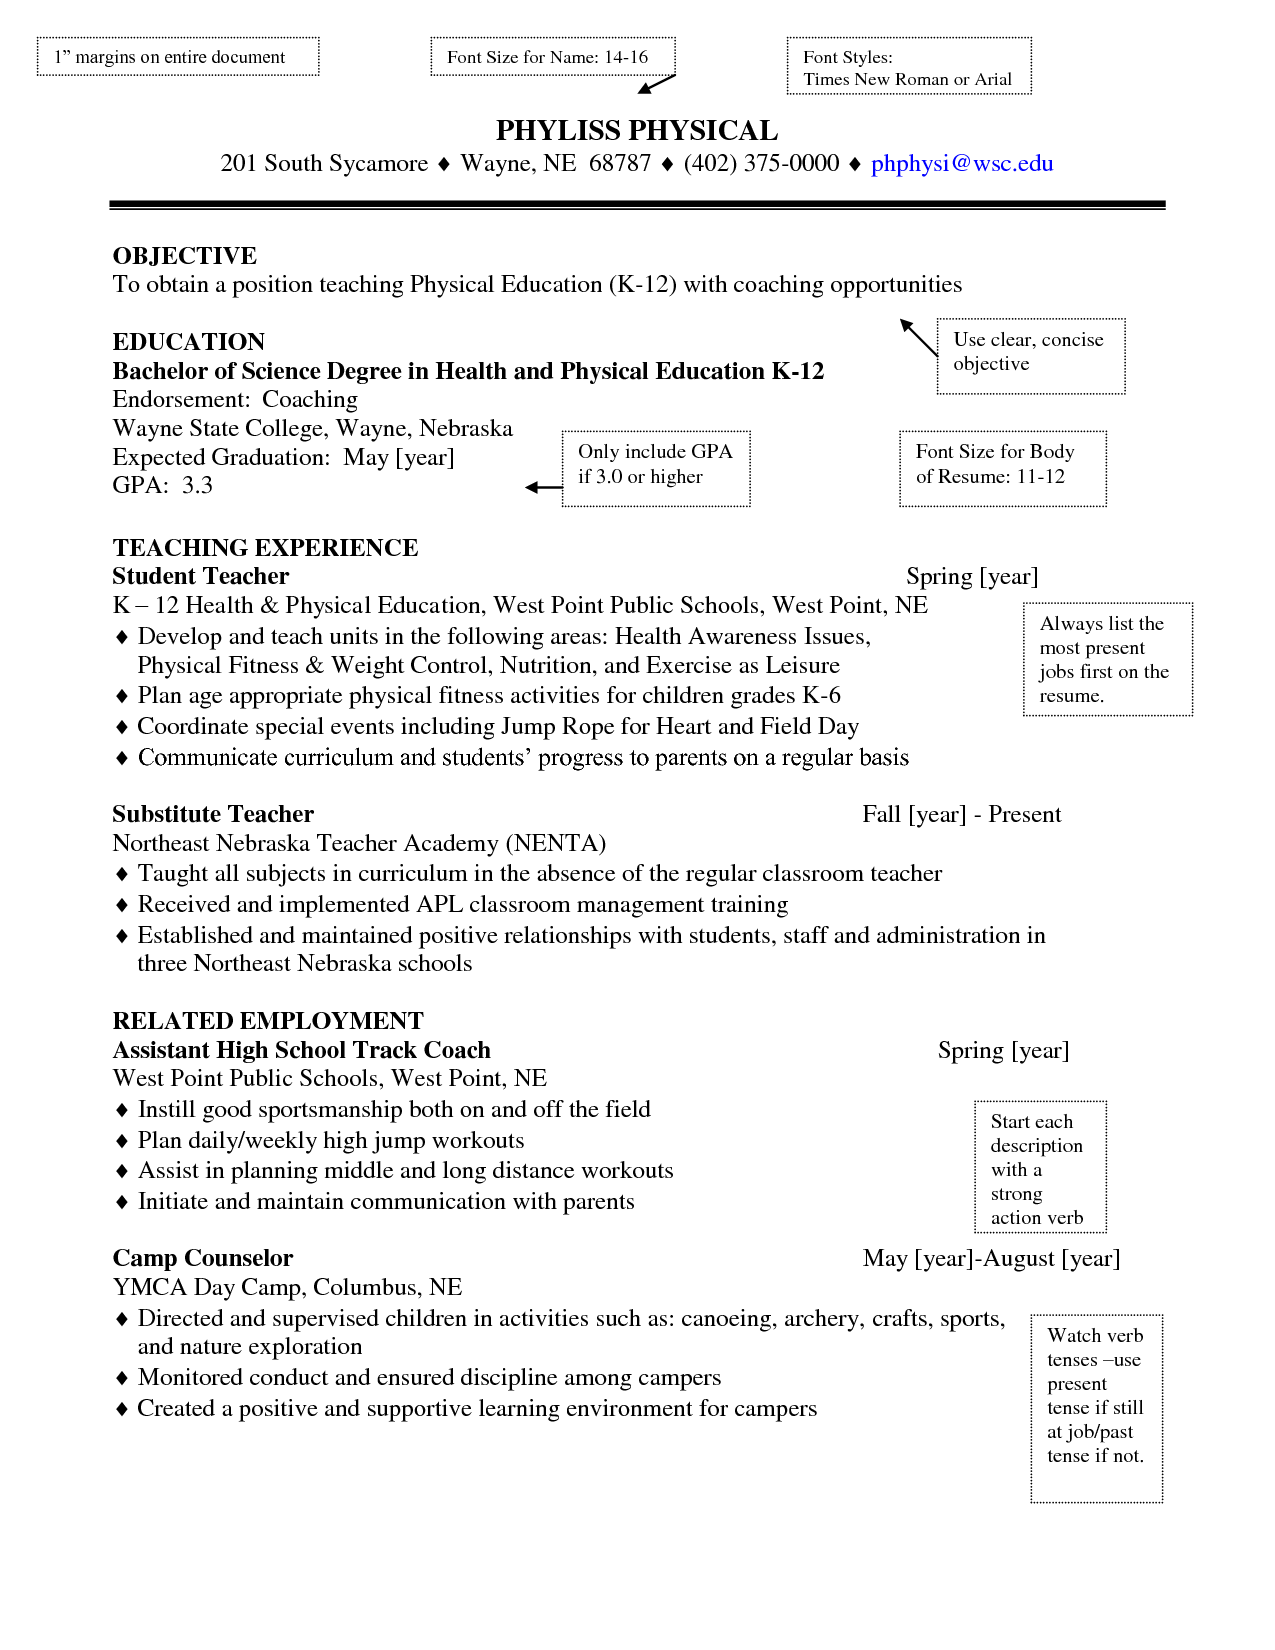 samples of special education teacher resumes - Sample Special Education Teacher Resume